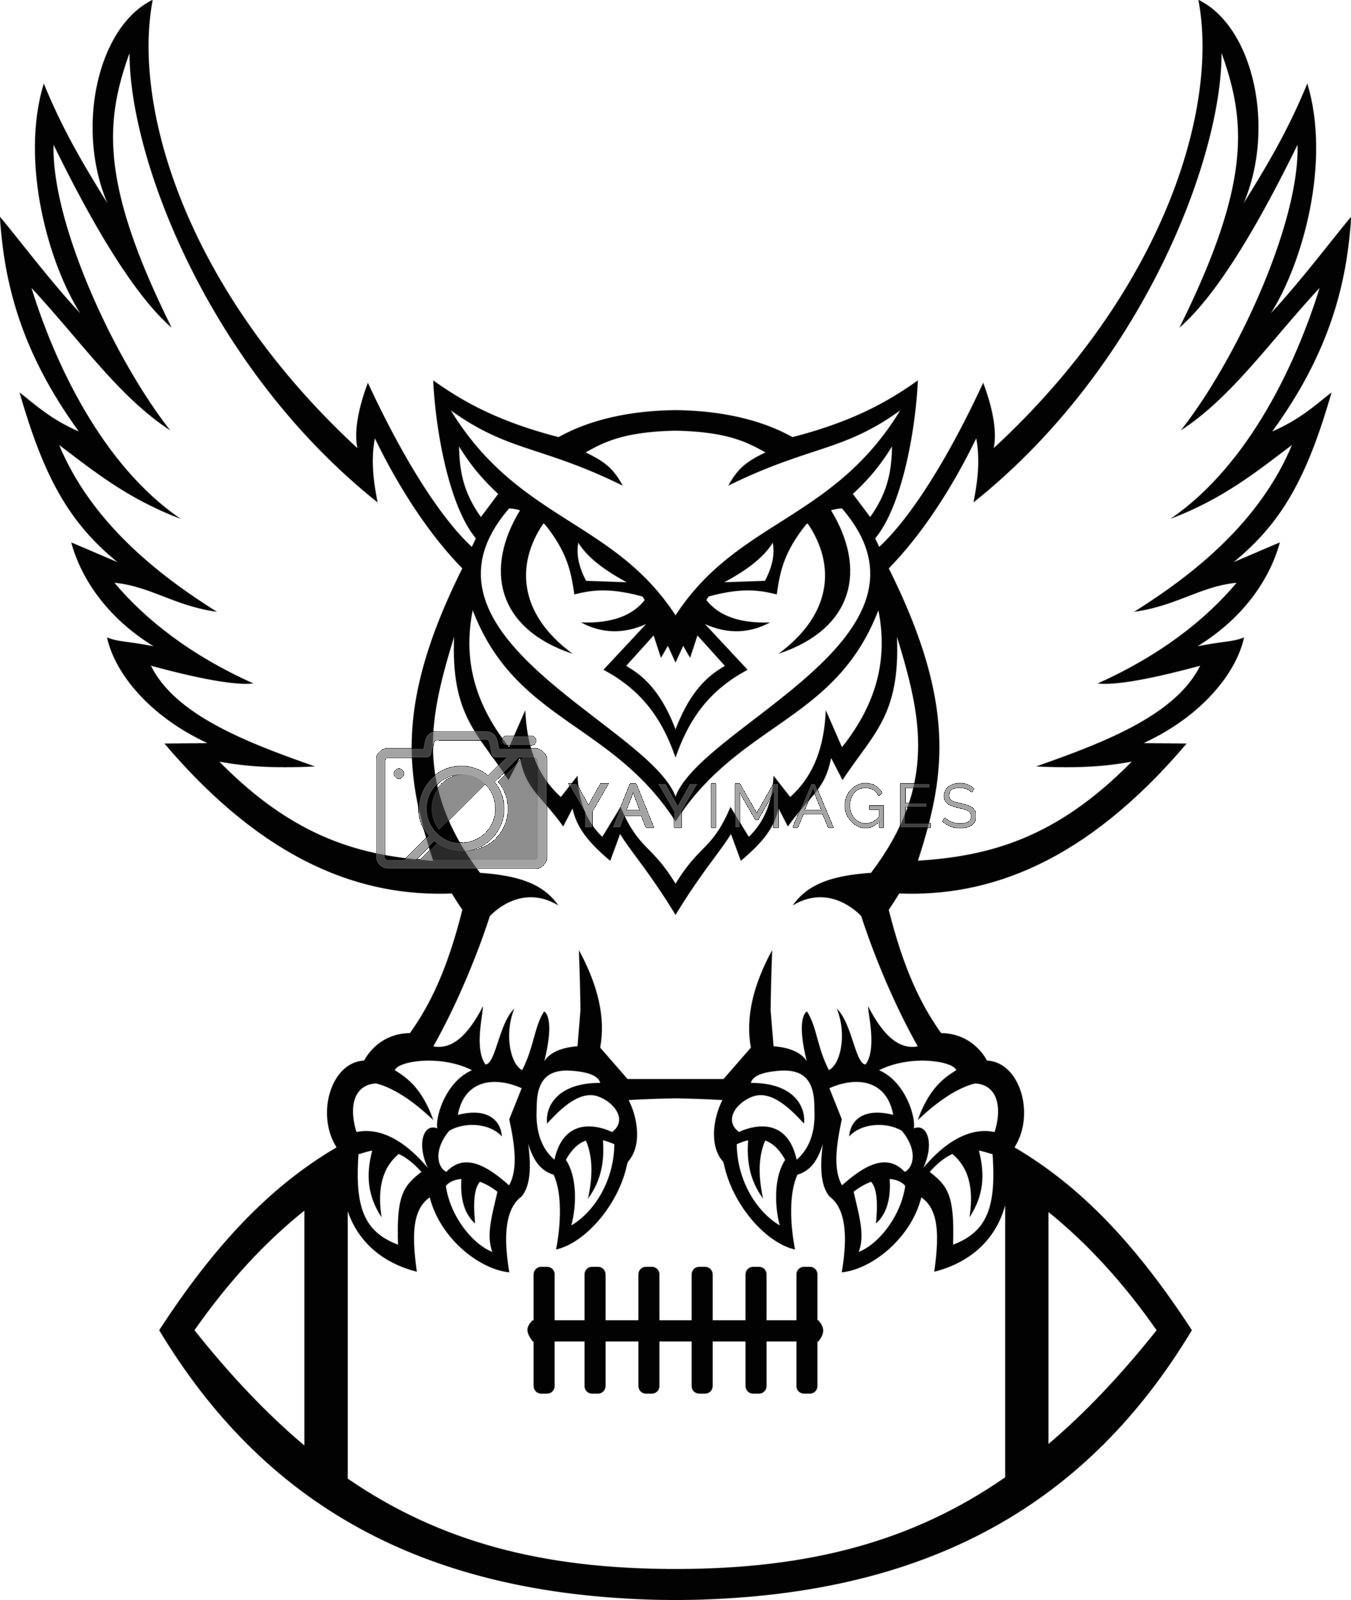 Mascot illustration of a great horned owl, tiger owl or hoot owl, a large owl native to the Americas, clutching an American football ball viewed from front in retro black and white style.